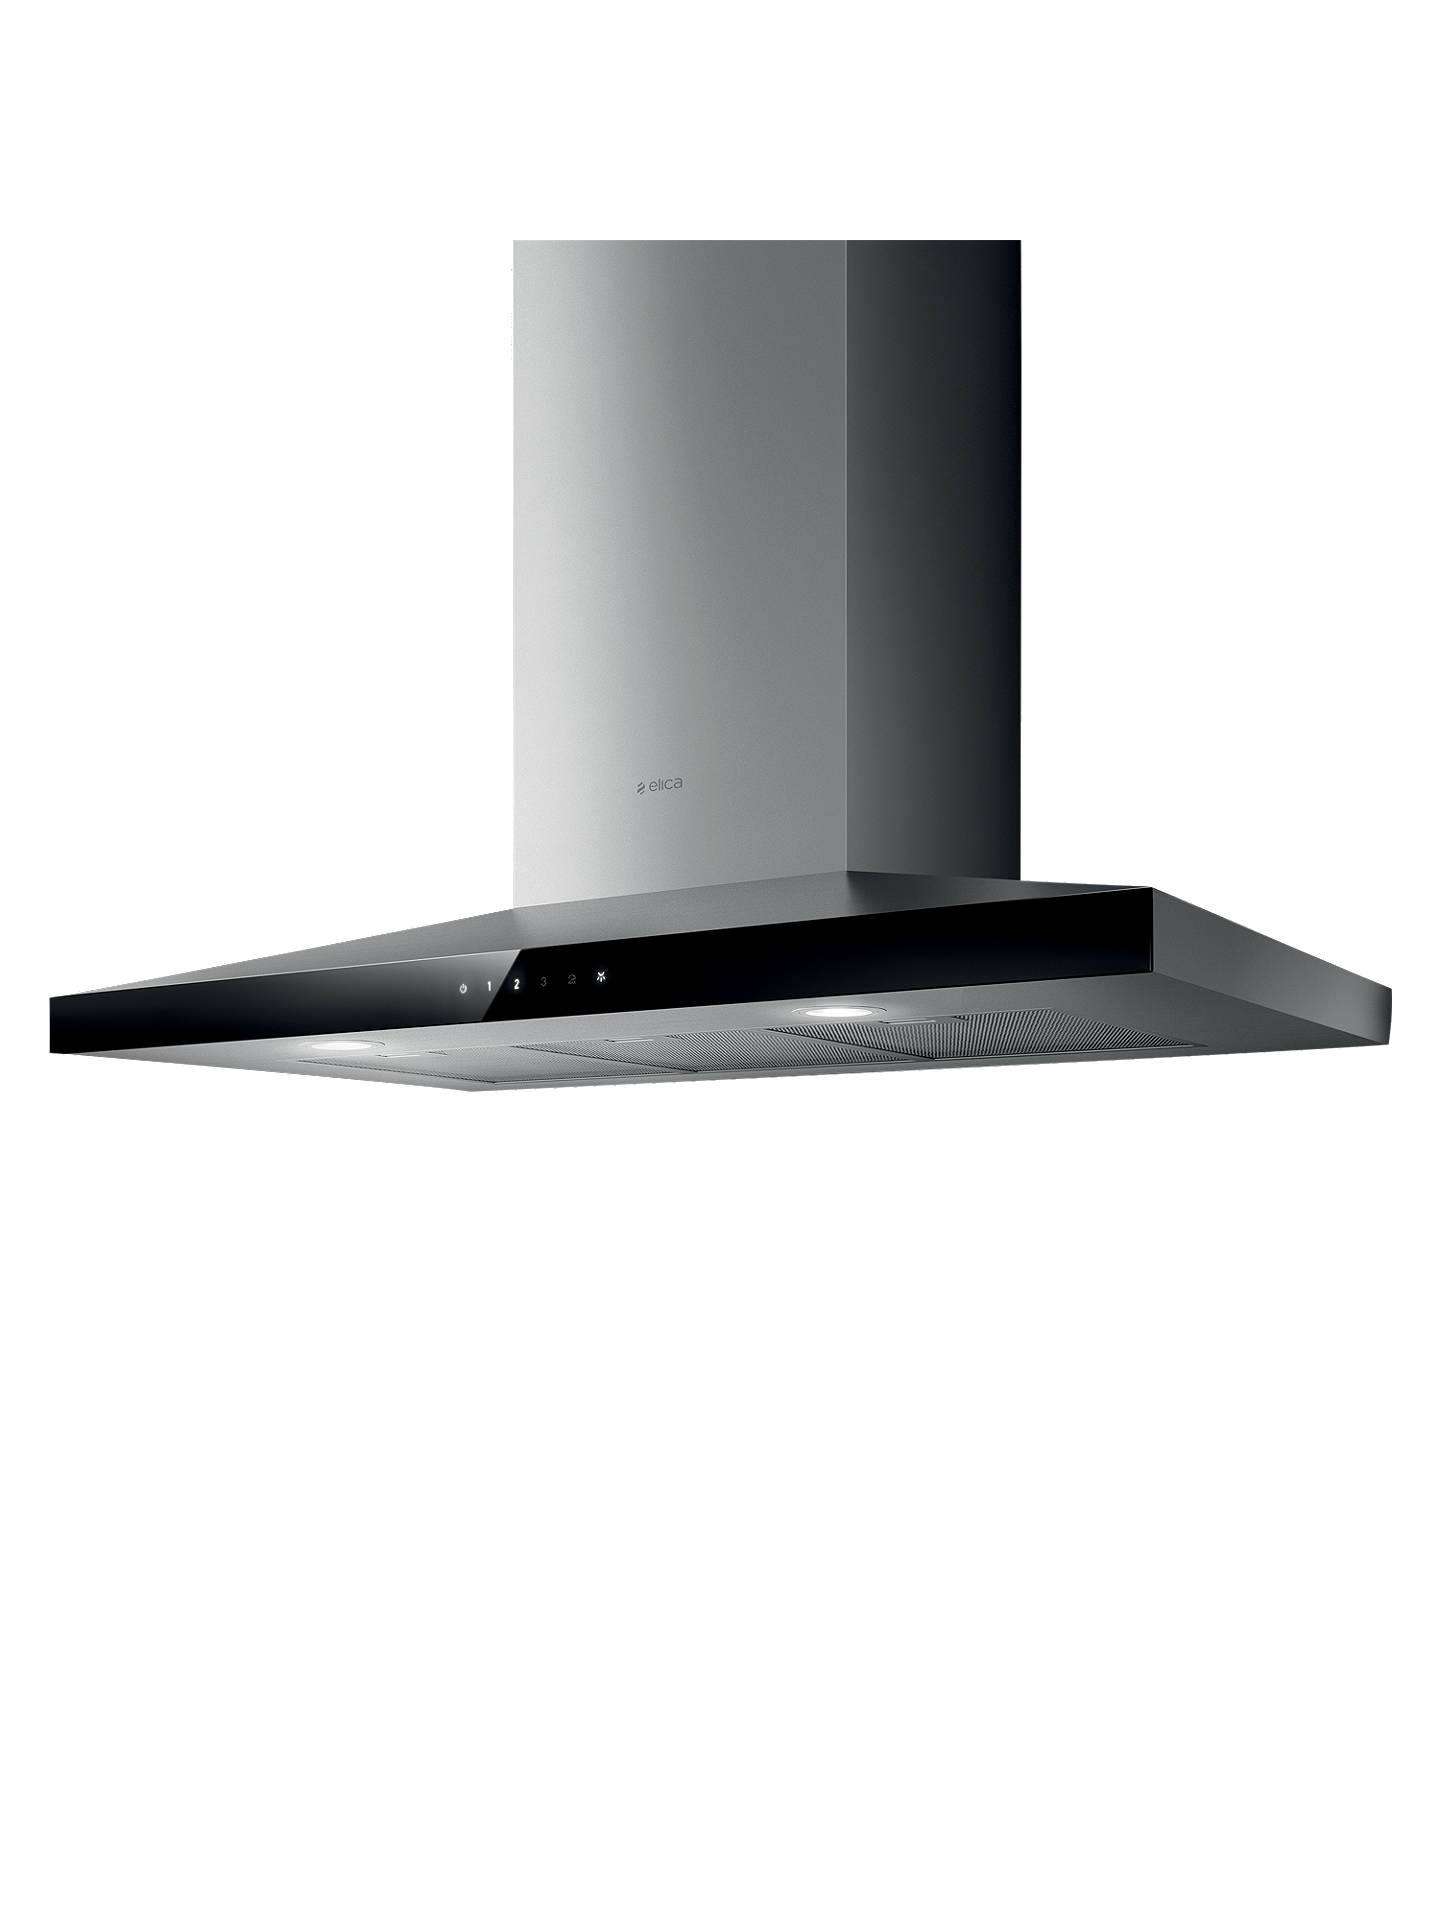 BuyElica Claire 60 Chimney Cooker Hood, Black Glass/Stainless Steel Online at johnlewis.com